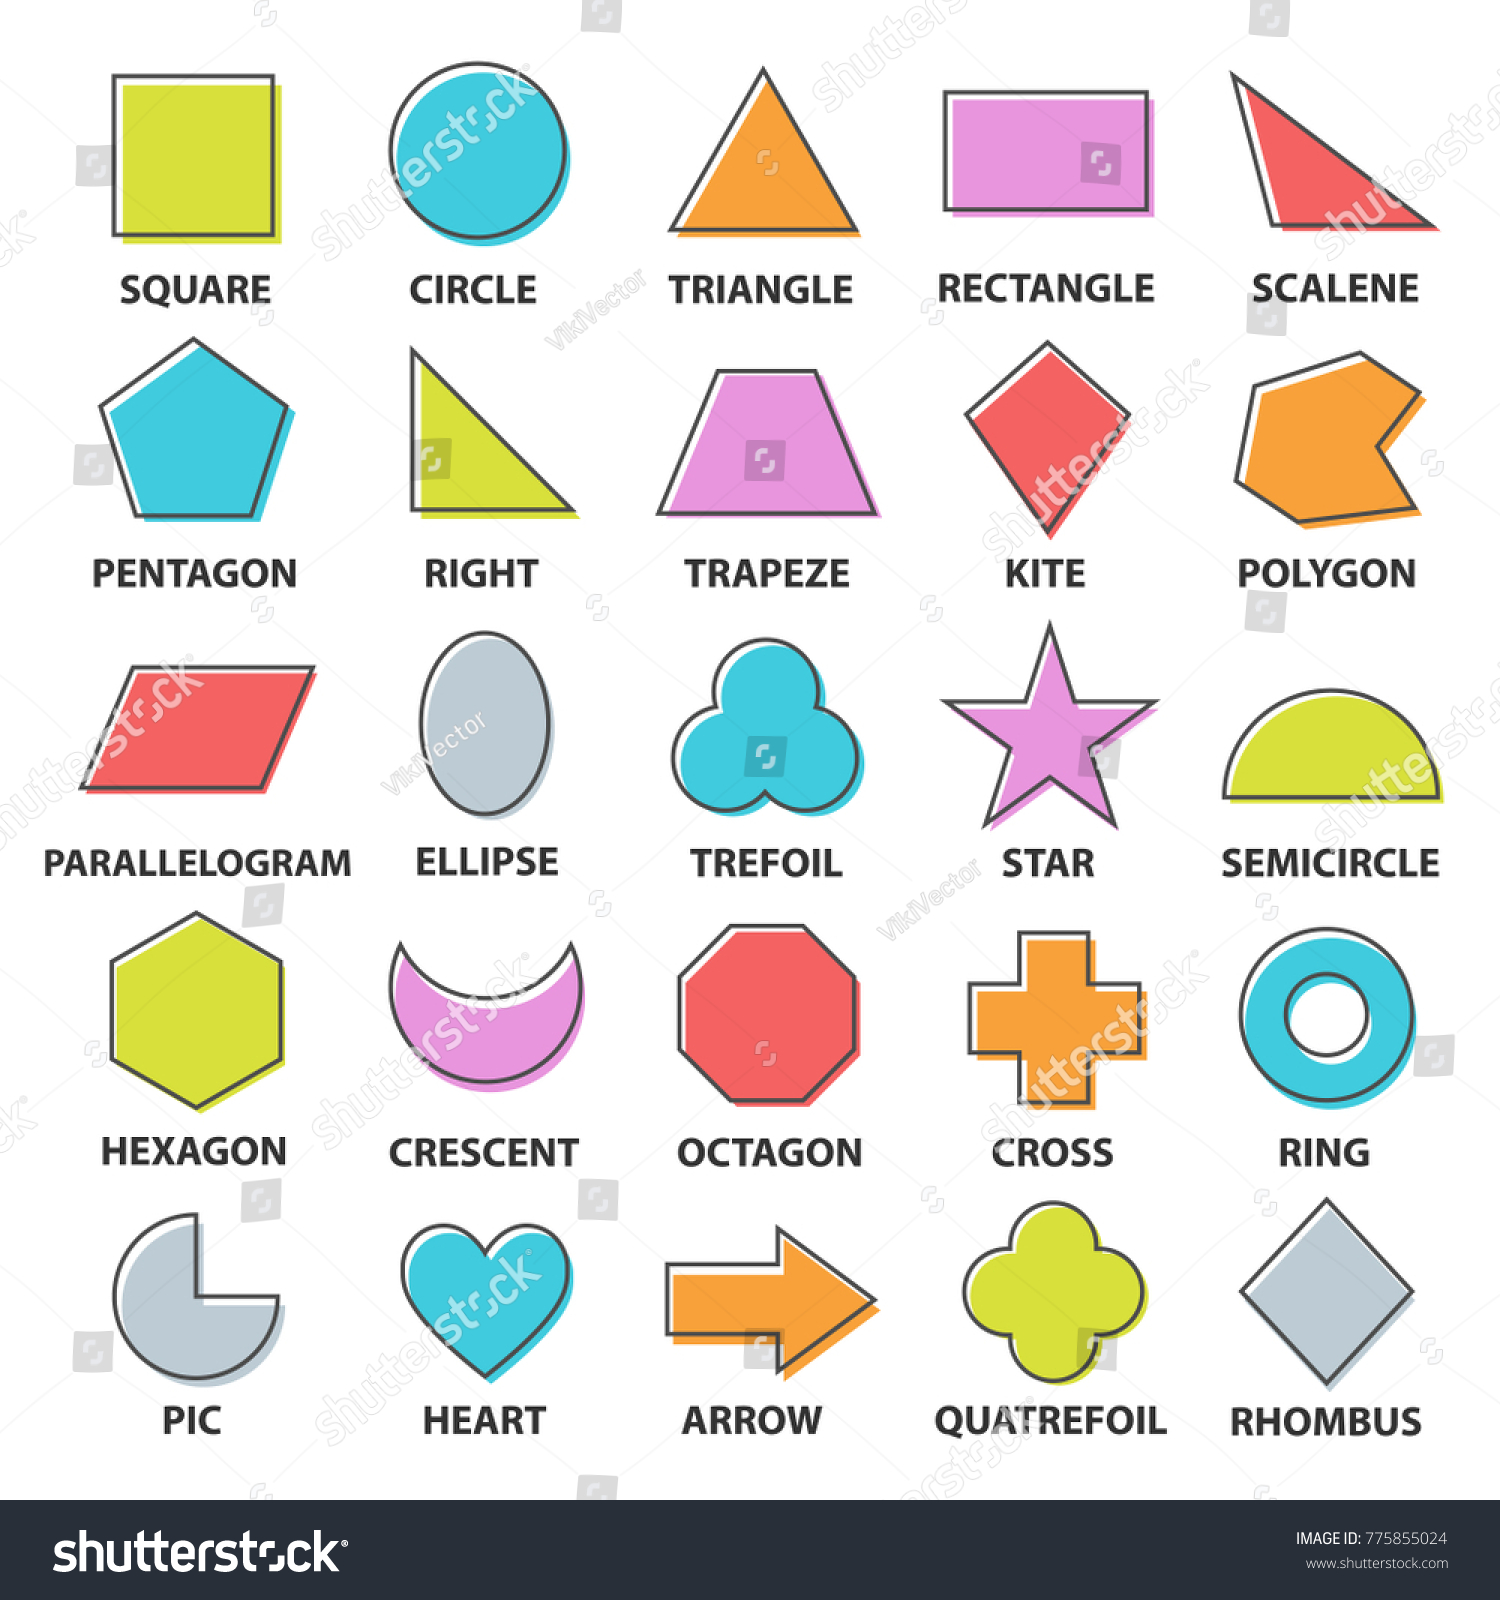 Shapes Worksheet Basic Household Items